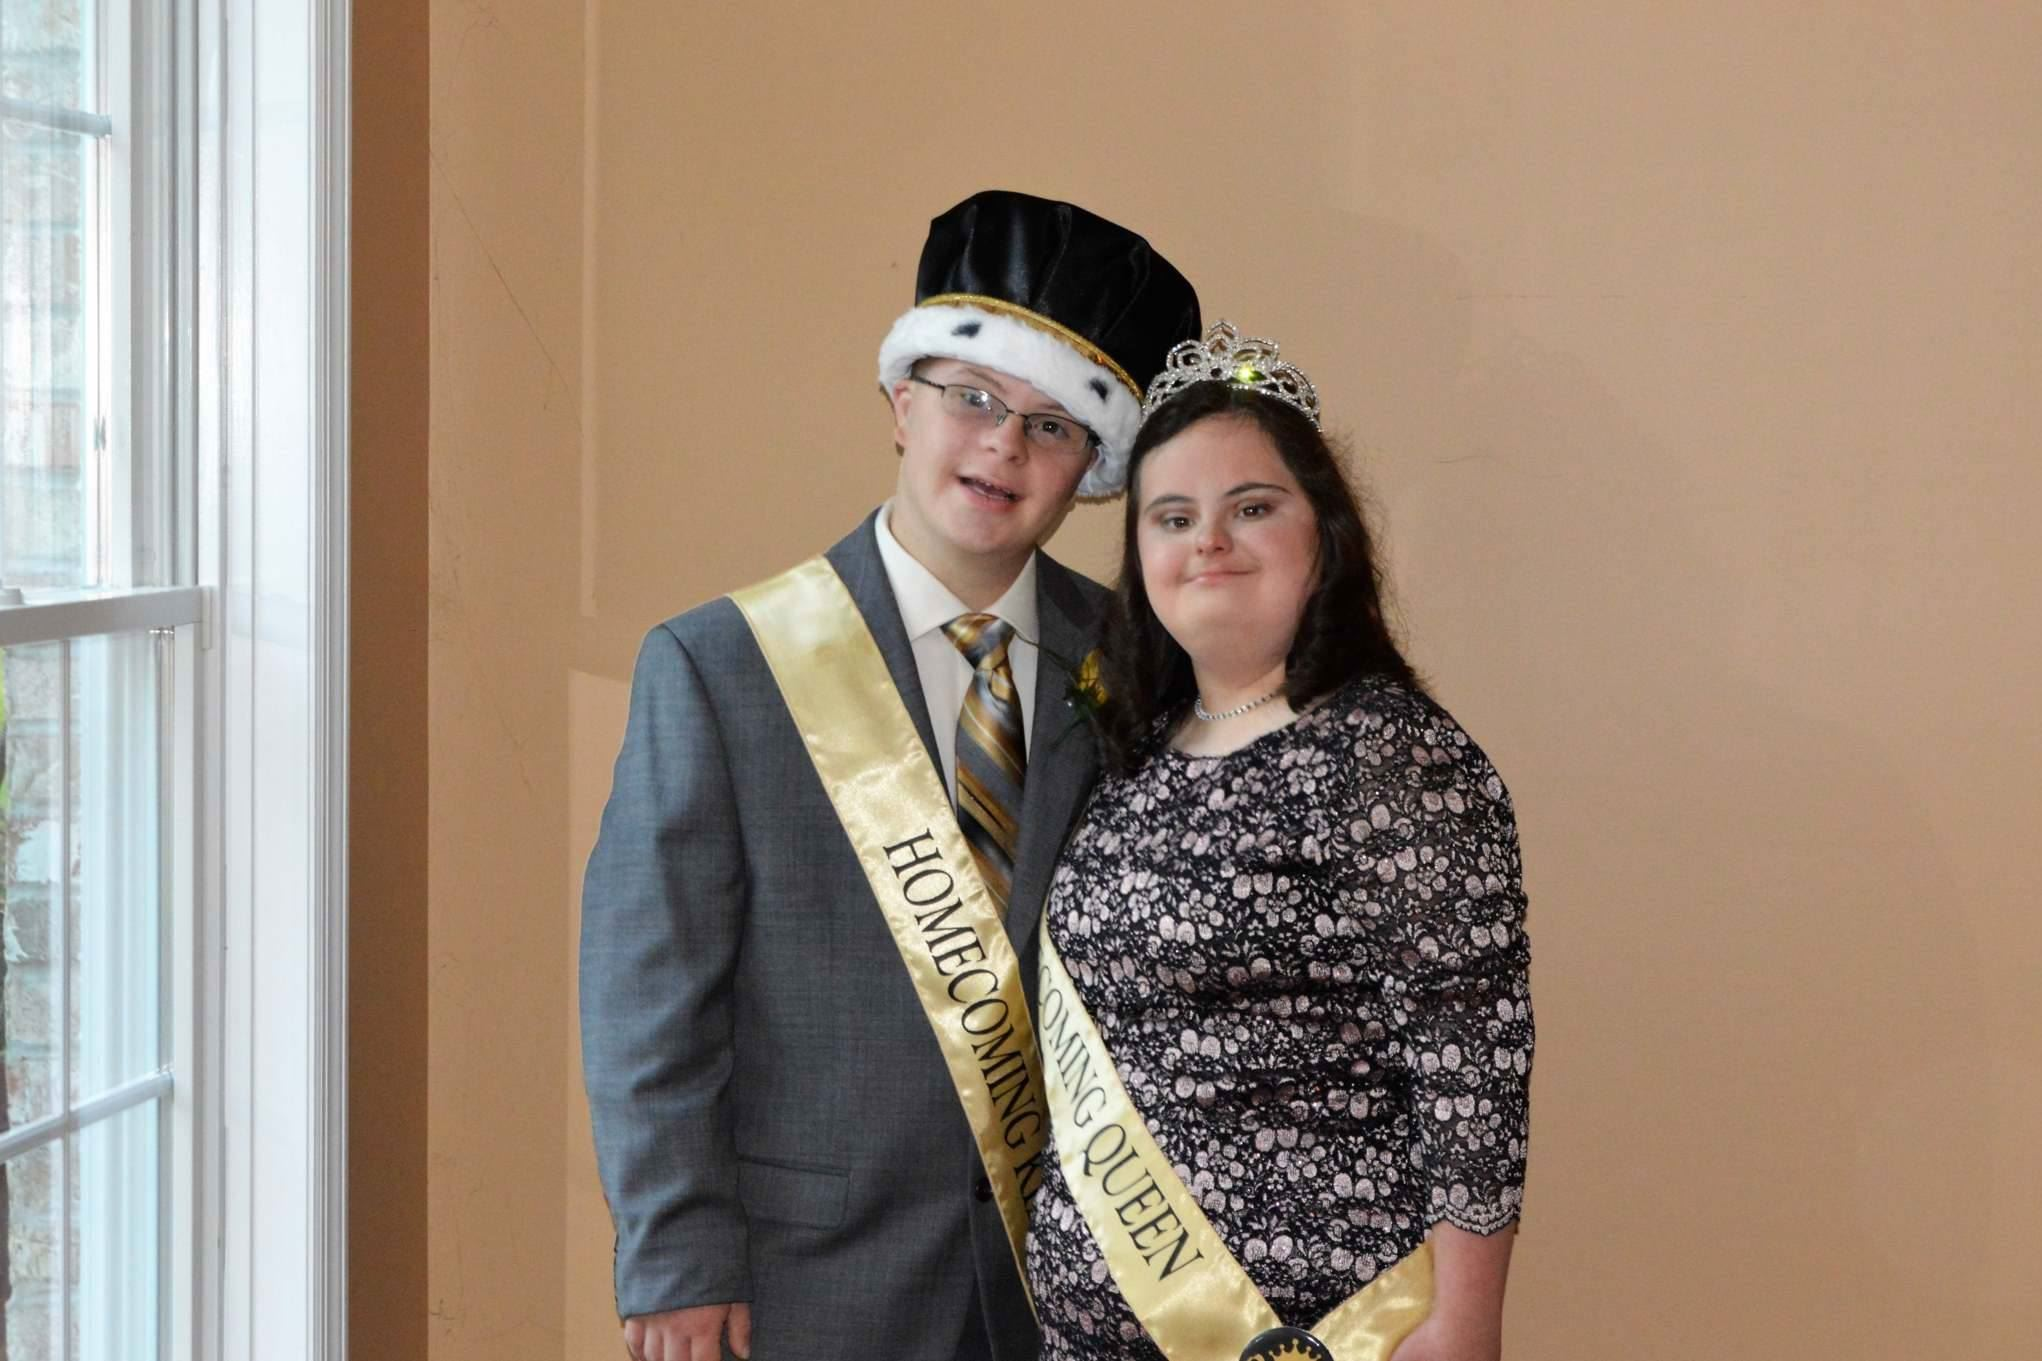 North Allegheny students embrace homecoming queen king